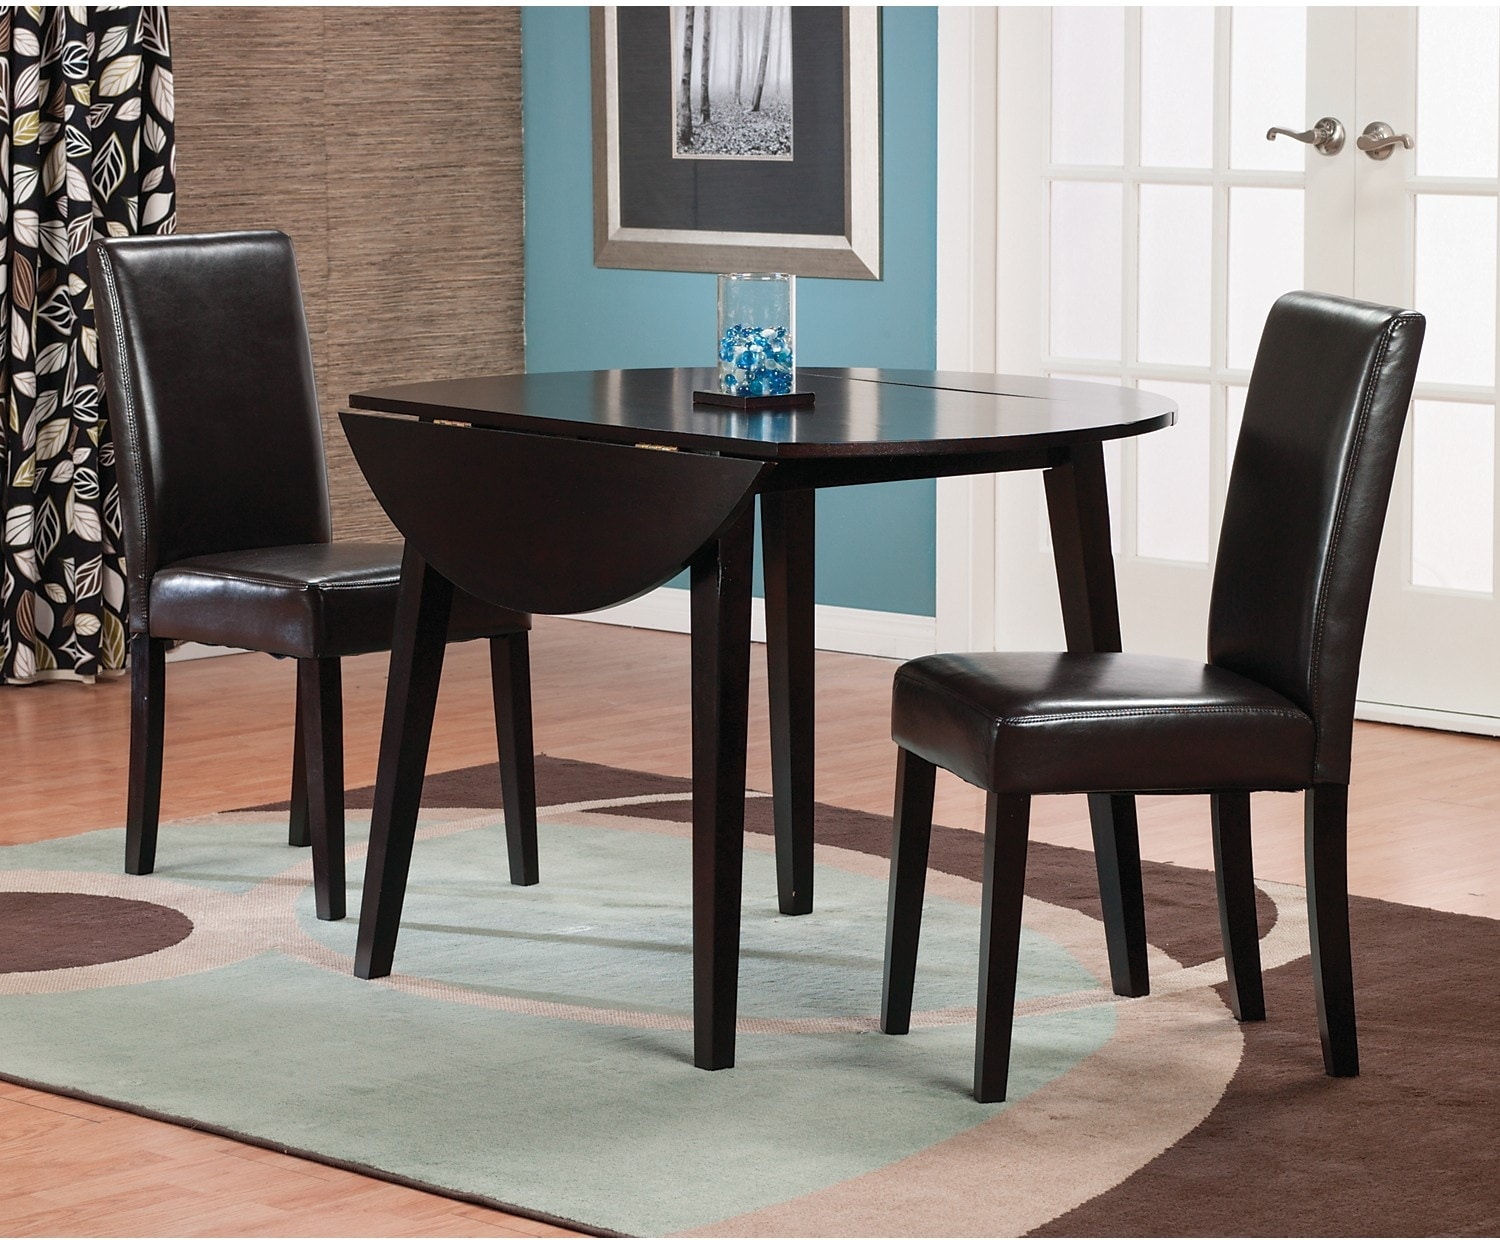 Dining Room Furniture - Dakota 3-Piece Dining Package w/ Brown Faux Leather Chairs